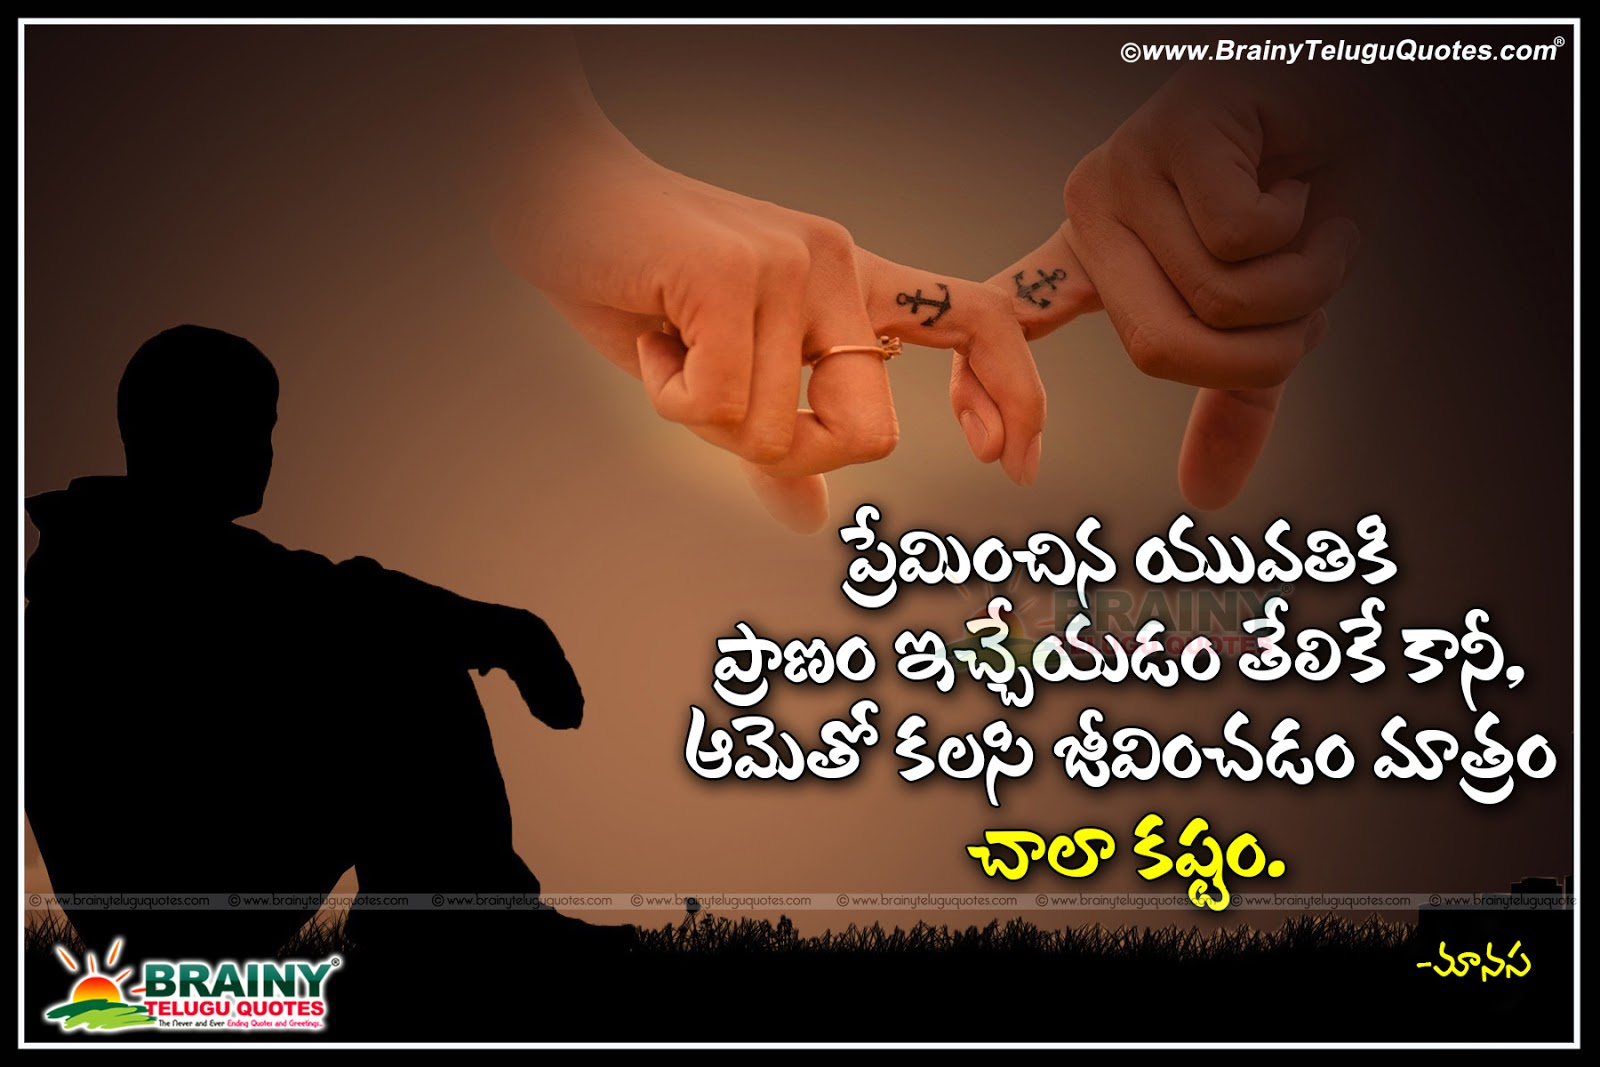 Telugu Love Quotes Nice Telugu Love Meaning Messages For Lovers  Brainyteluguquotes